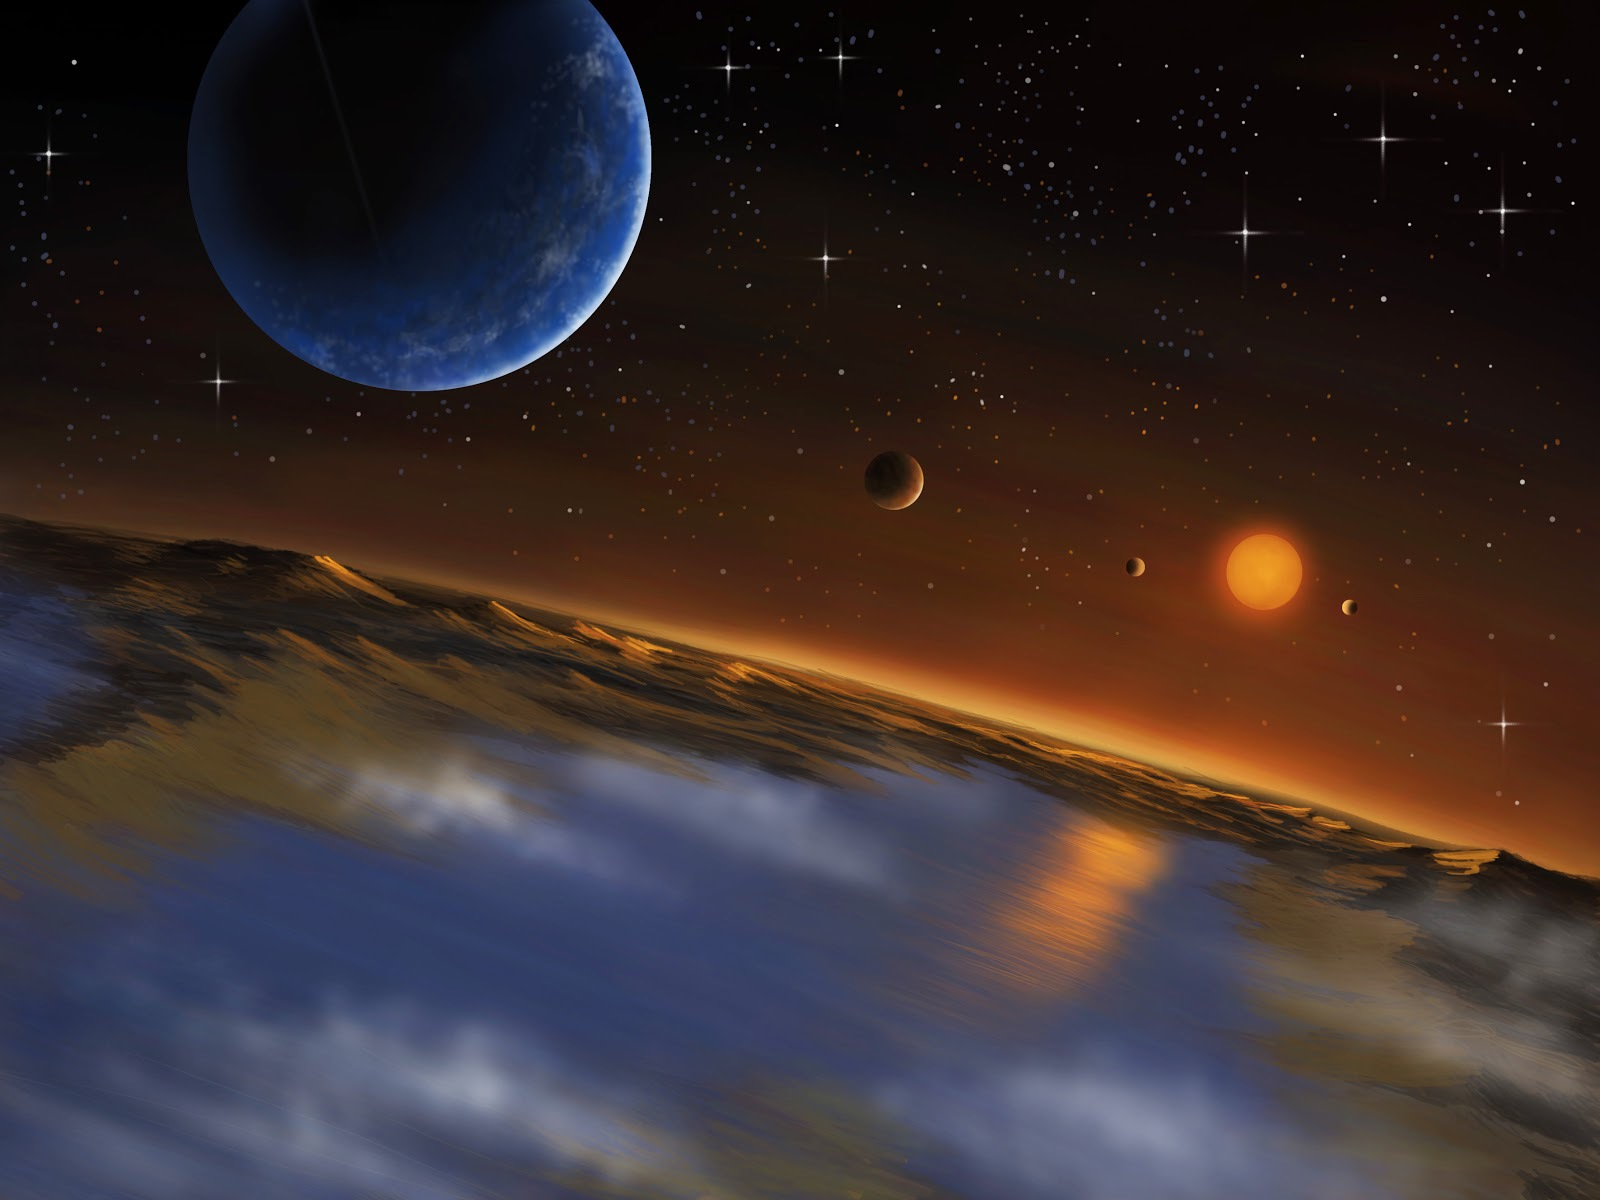 exo in the solar system planets - photo #39